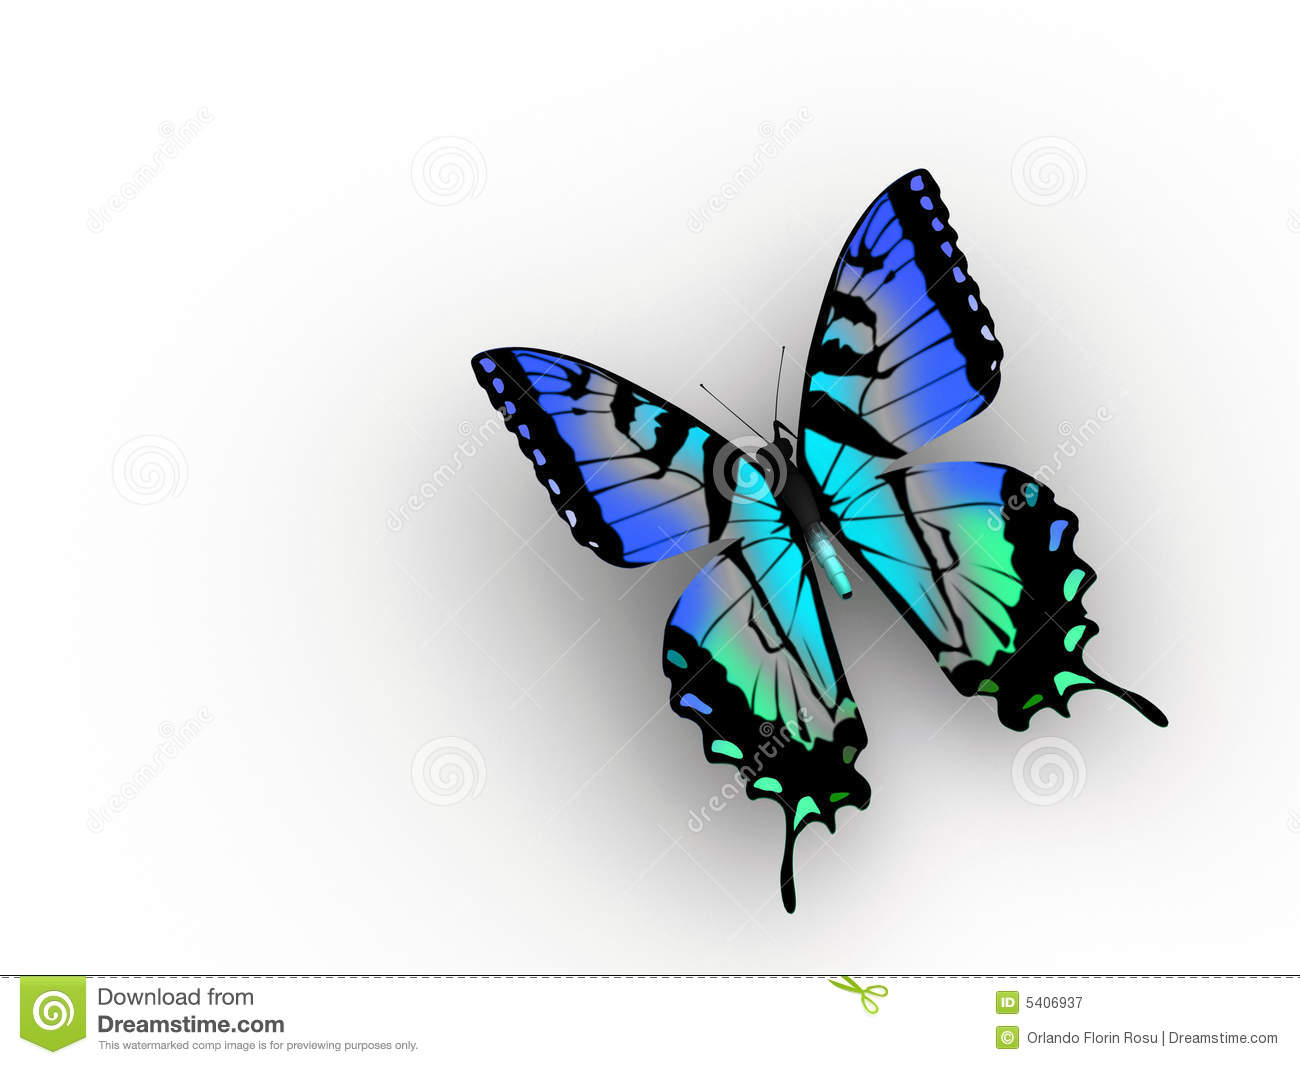 Butterfly Royalty Free Stock Photography - Image: 5406937: www.dreamstime.com/royalty-free-stock-photography-butterfly...